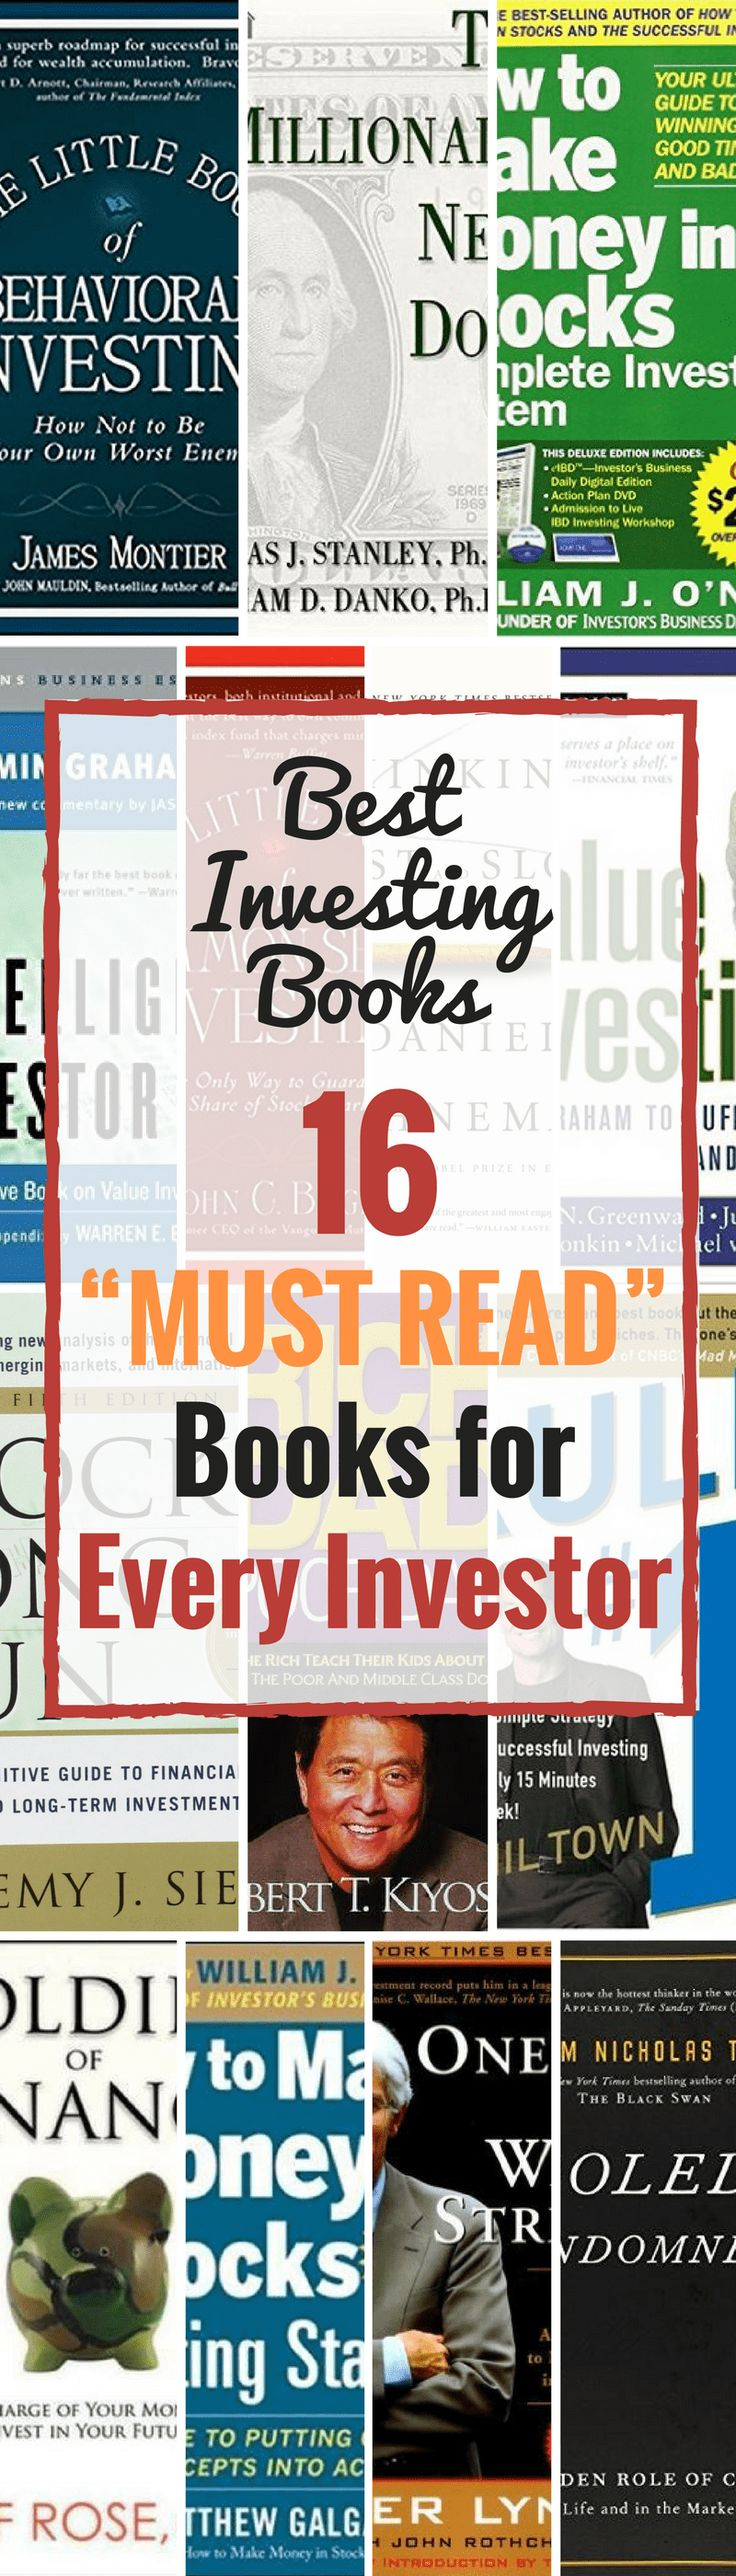 "Best Investing Books: 16 €�must Read"" Books For Every Investor"